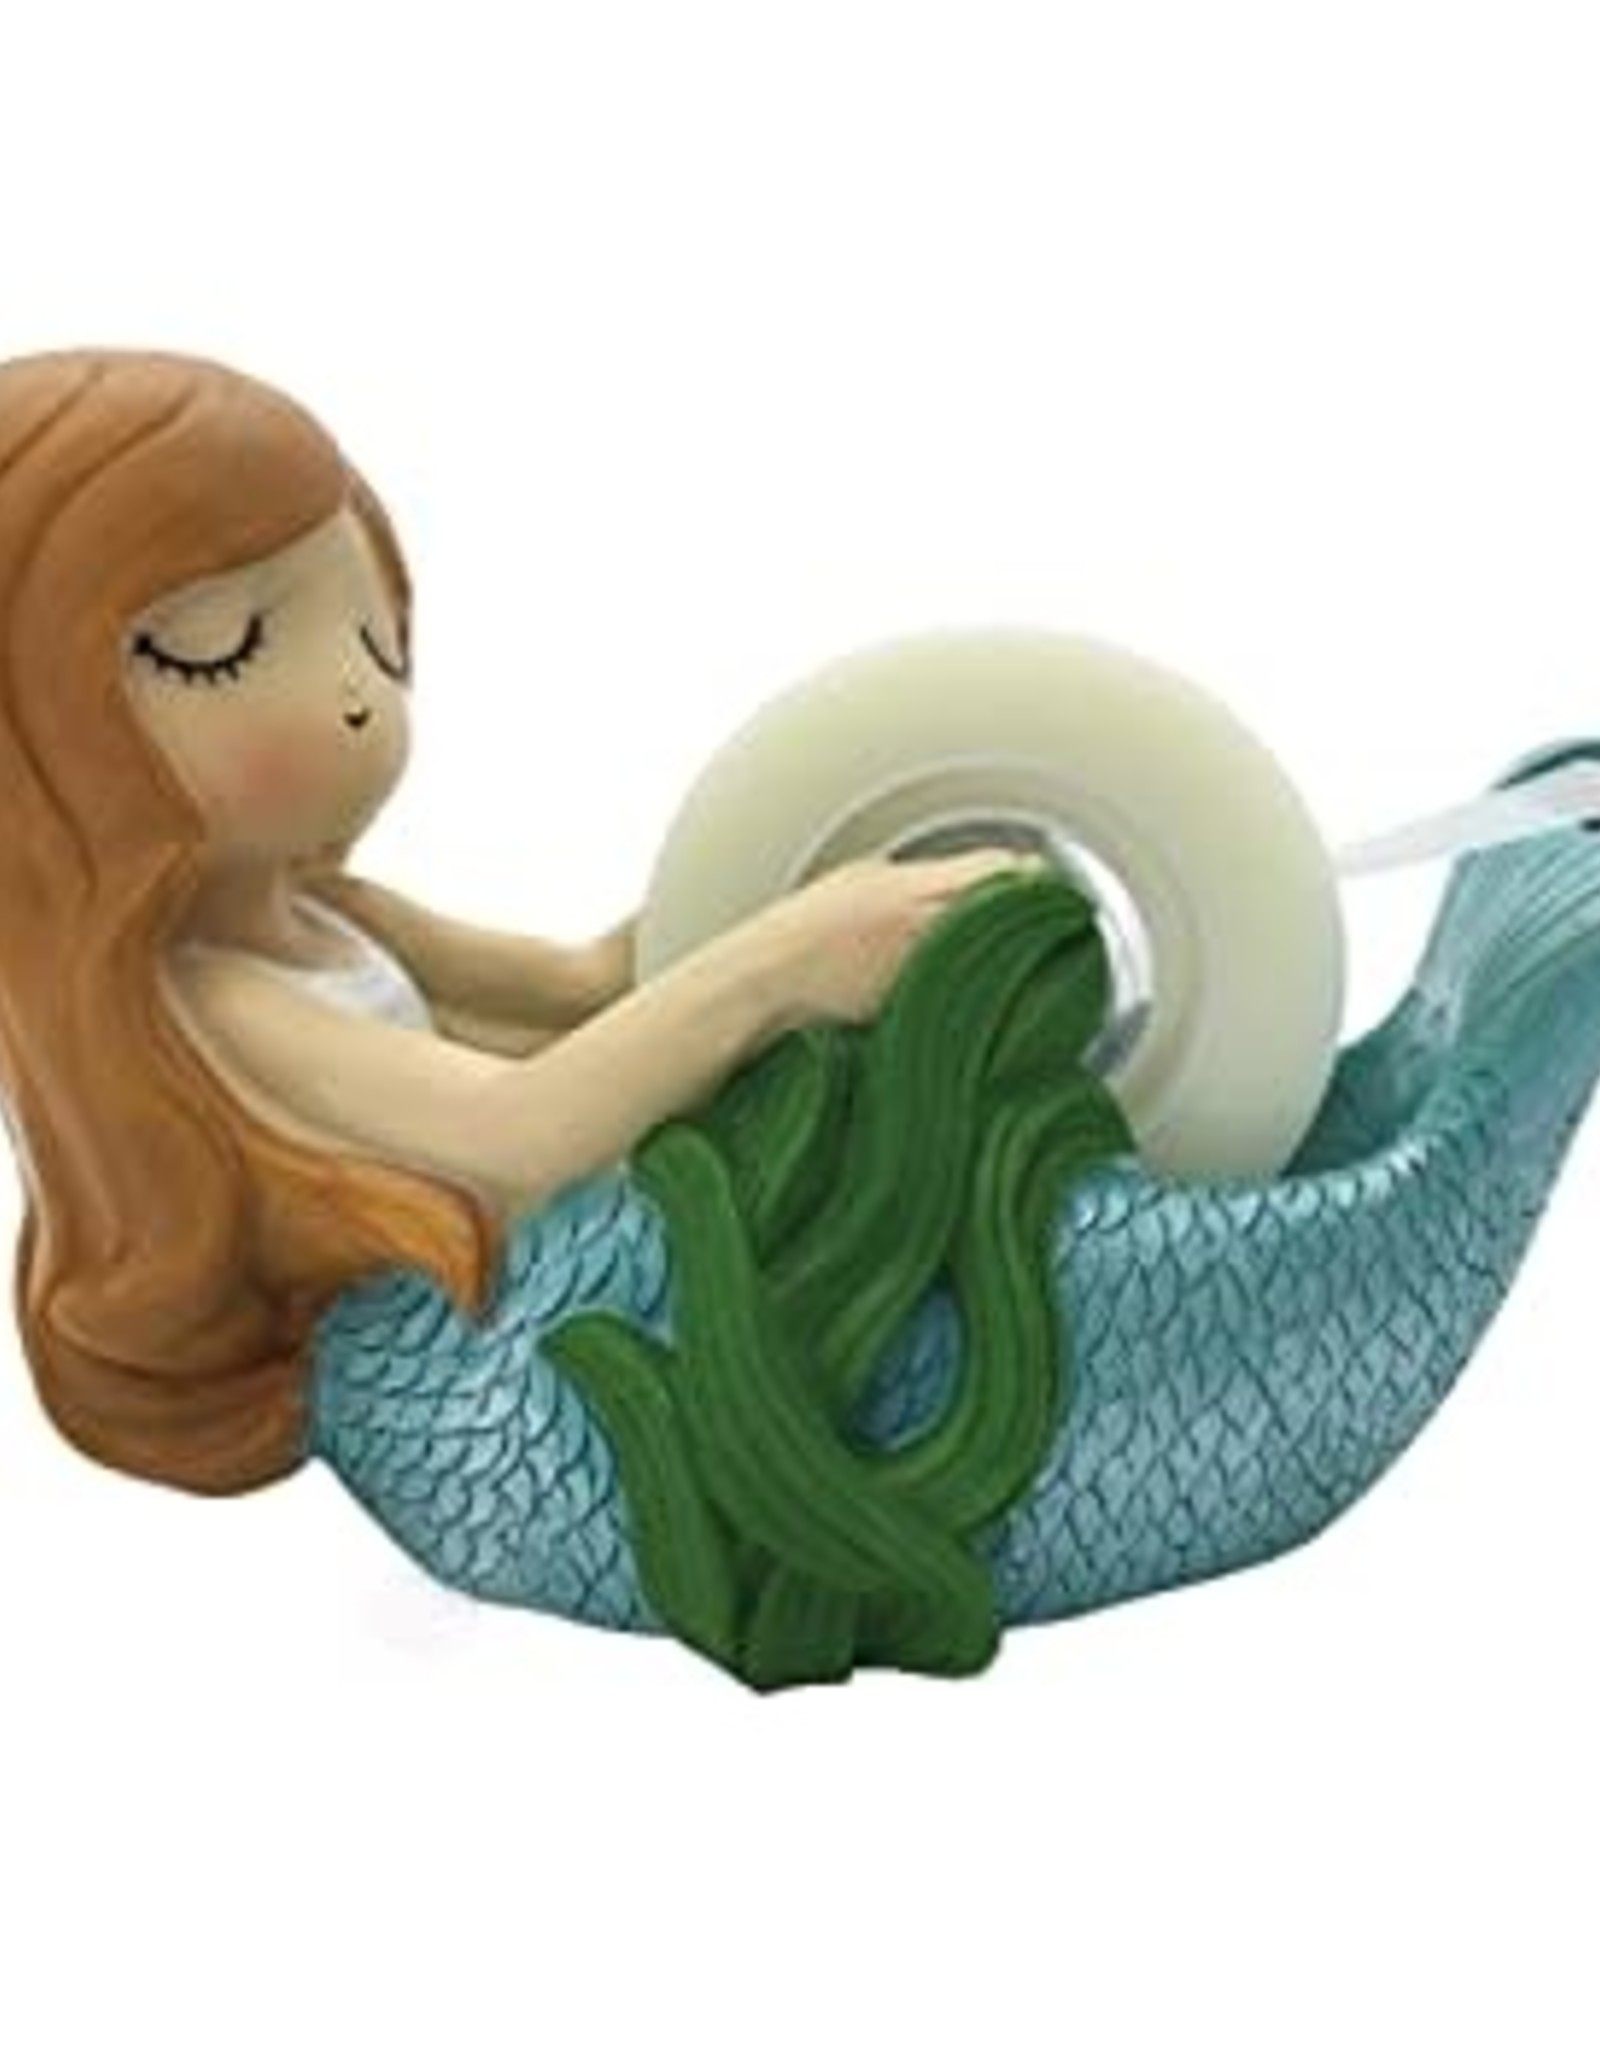 Streamline Mermaid Tape Organizer